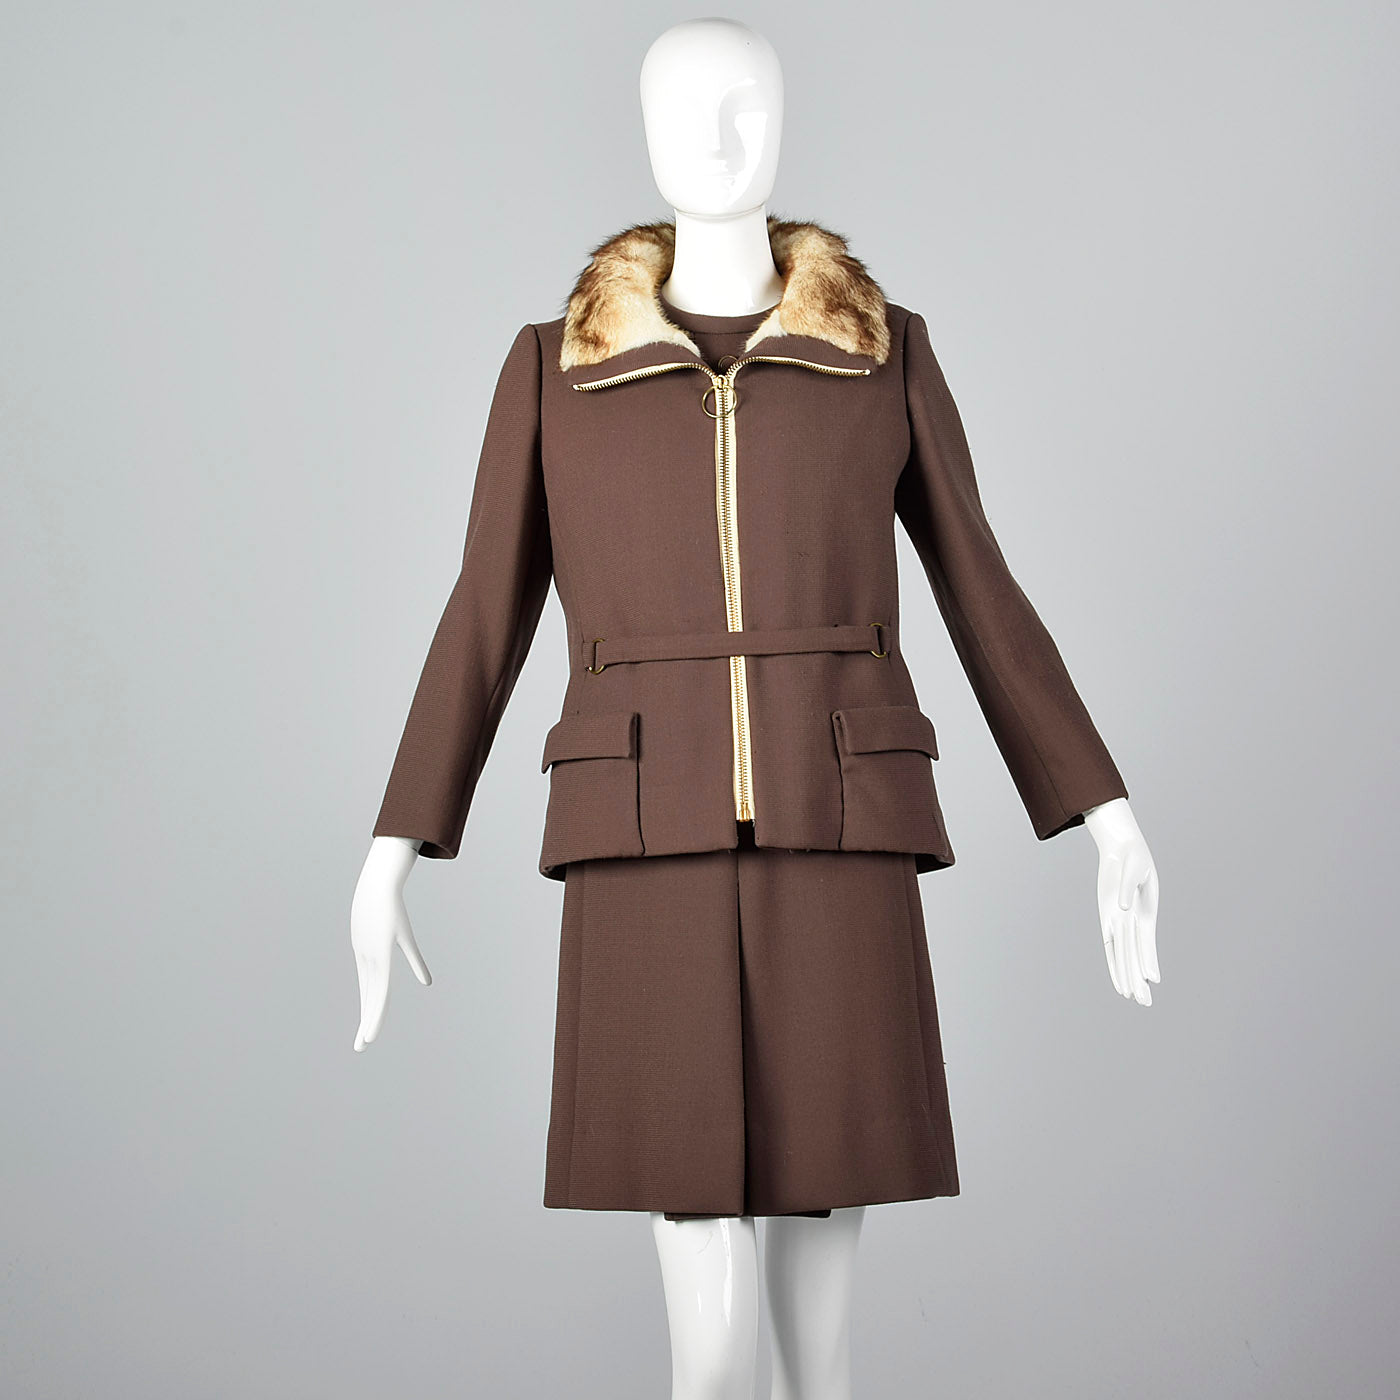 1960s Brown Wool Dress with Muskrat Fur Lined Jacket